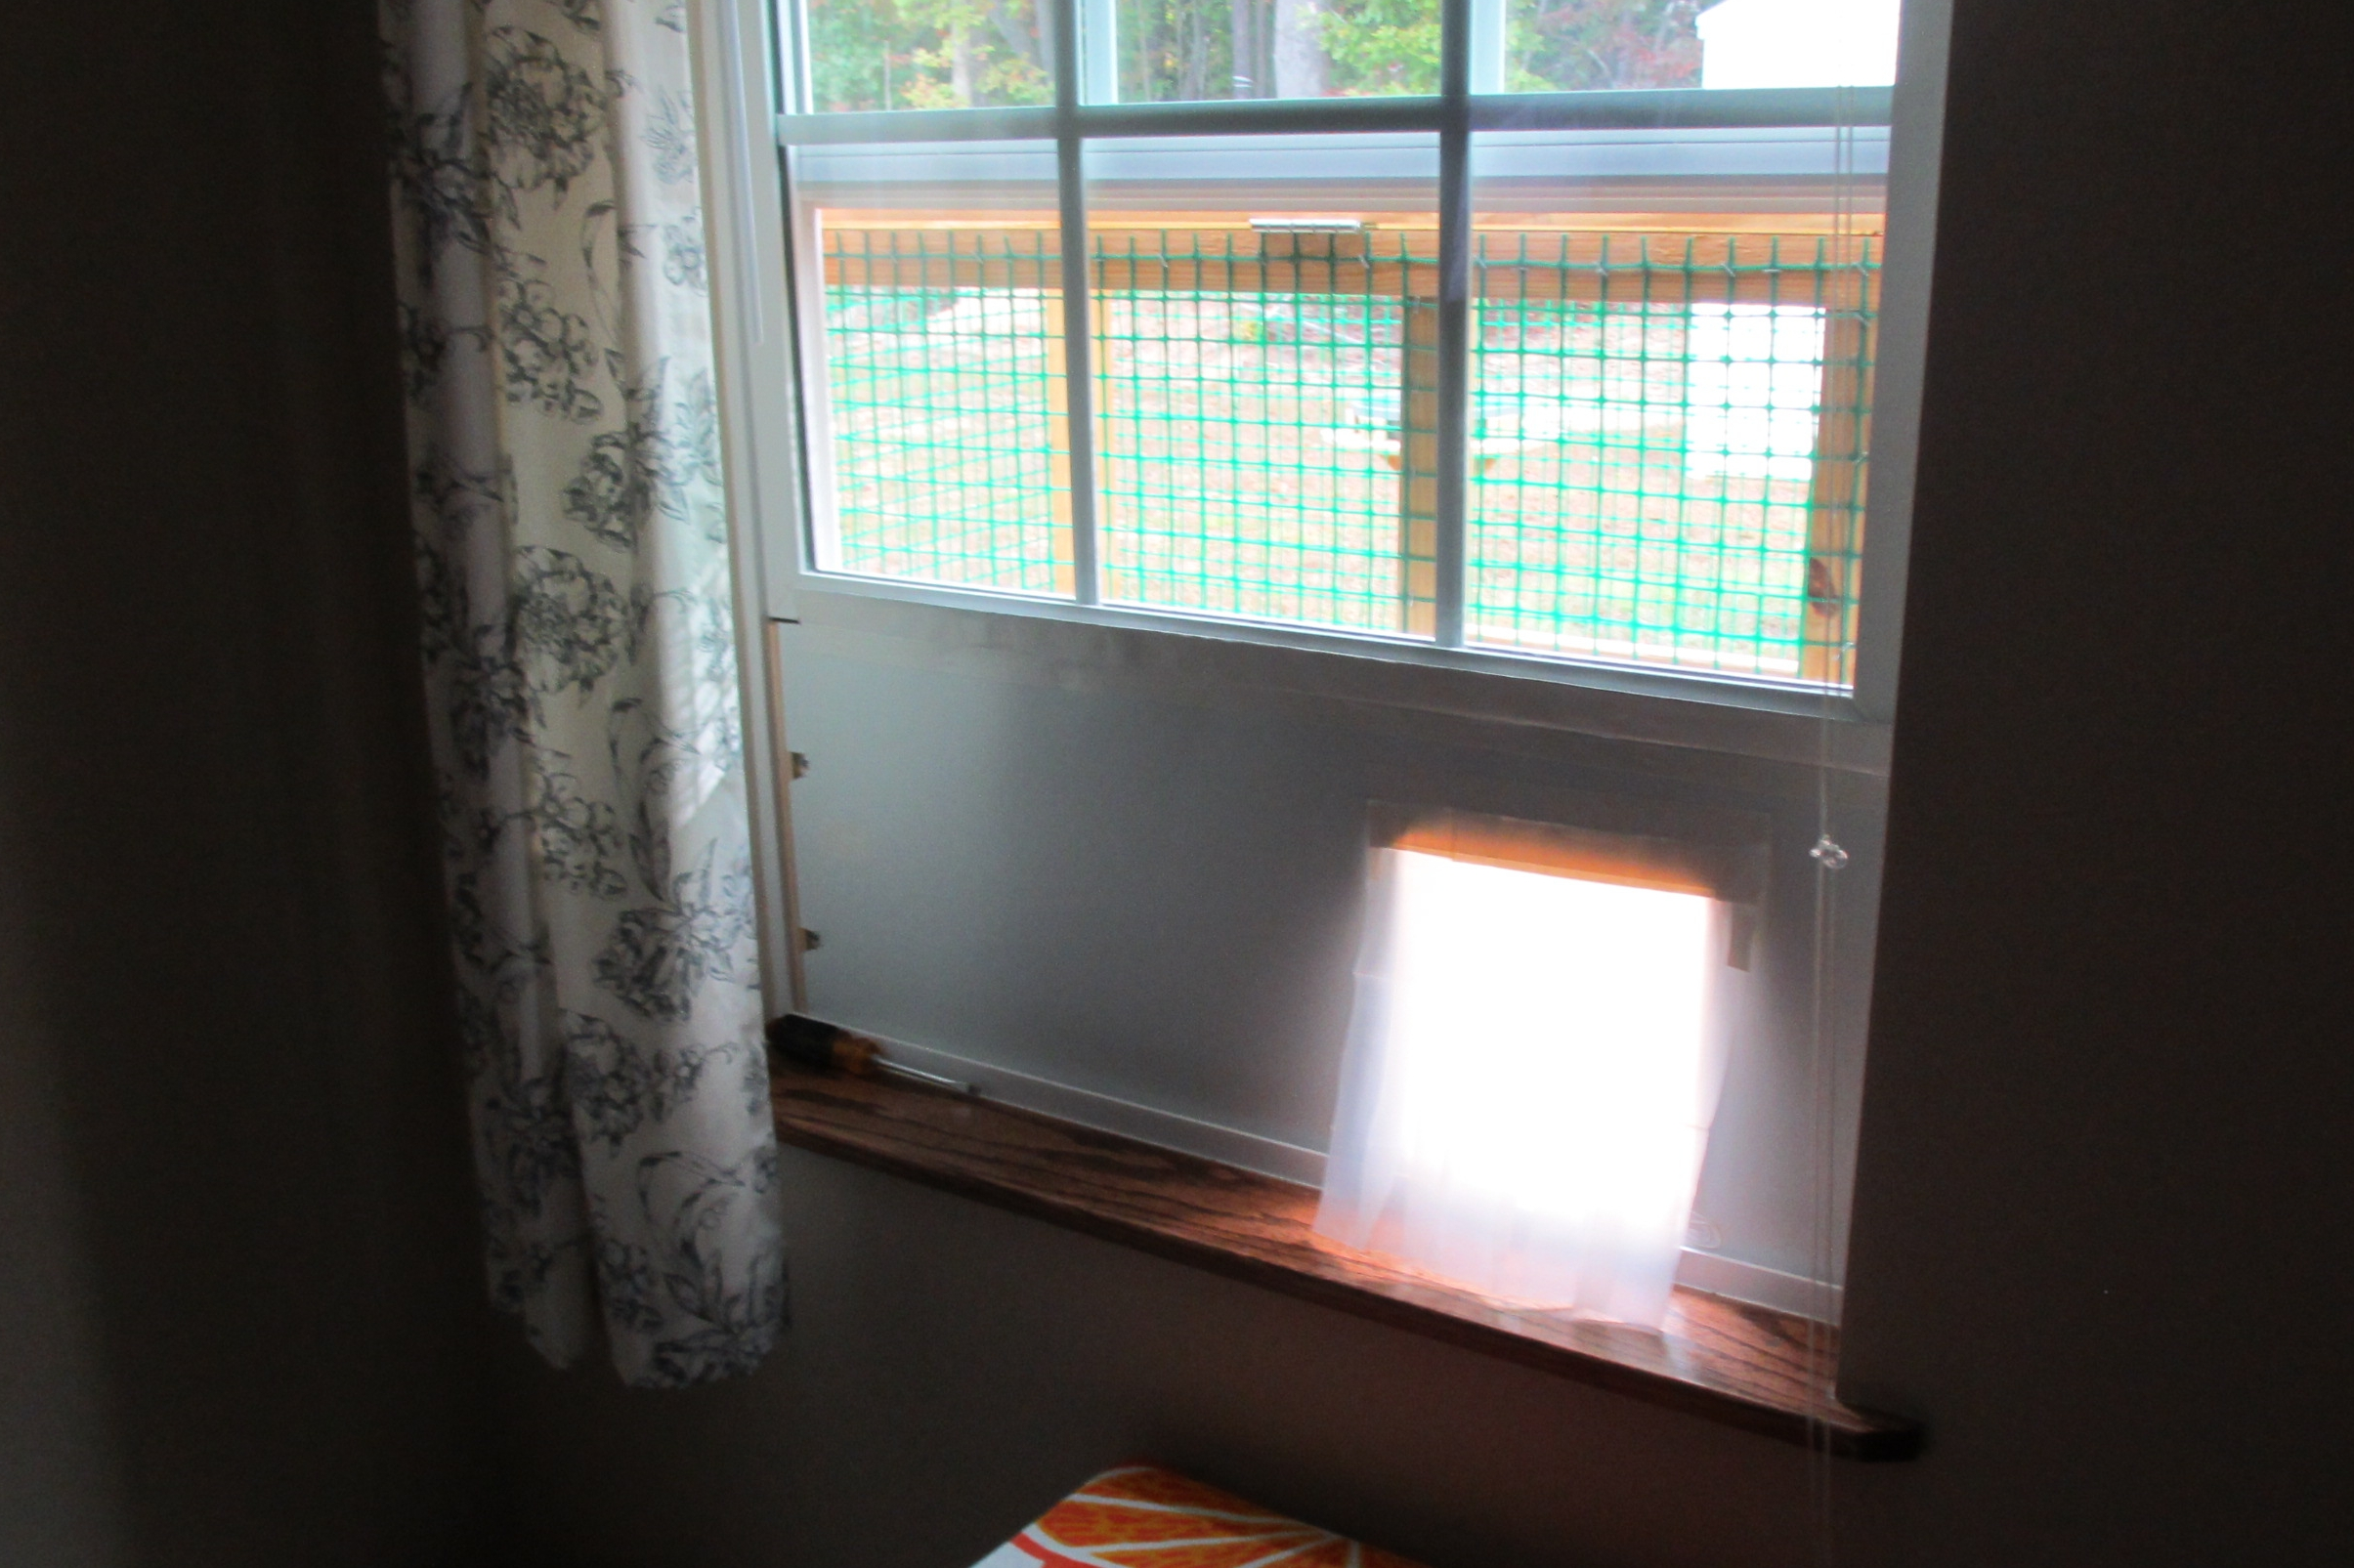 A Simple, Removable Insert I Designed And Built For One Of Our Windows So  The Cat Can Get In And Out Without Getting Bugs, Etc. In Our House. ...